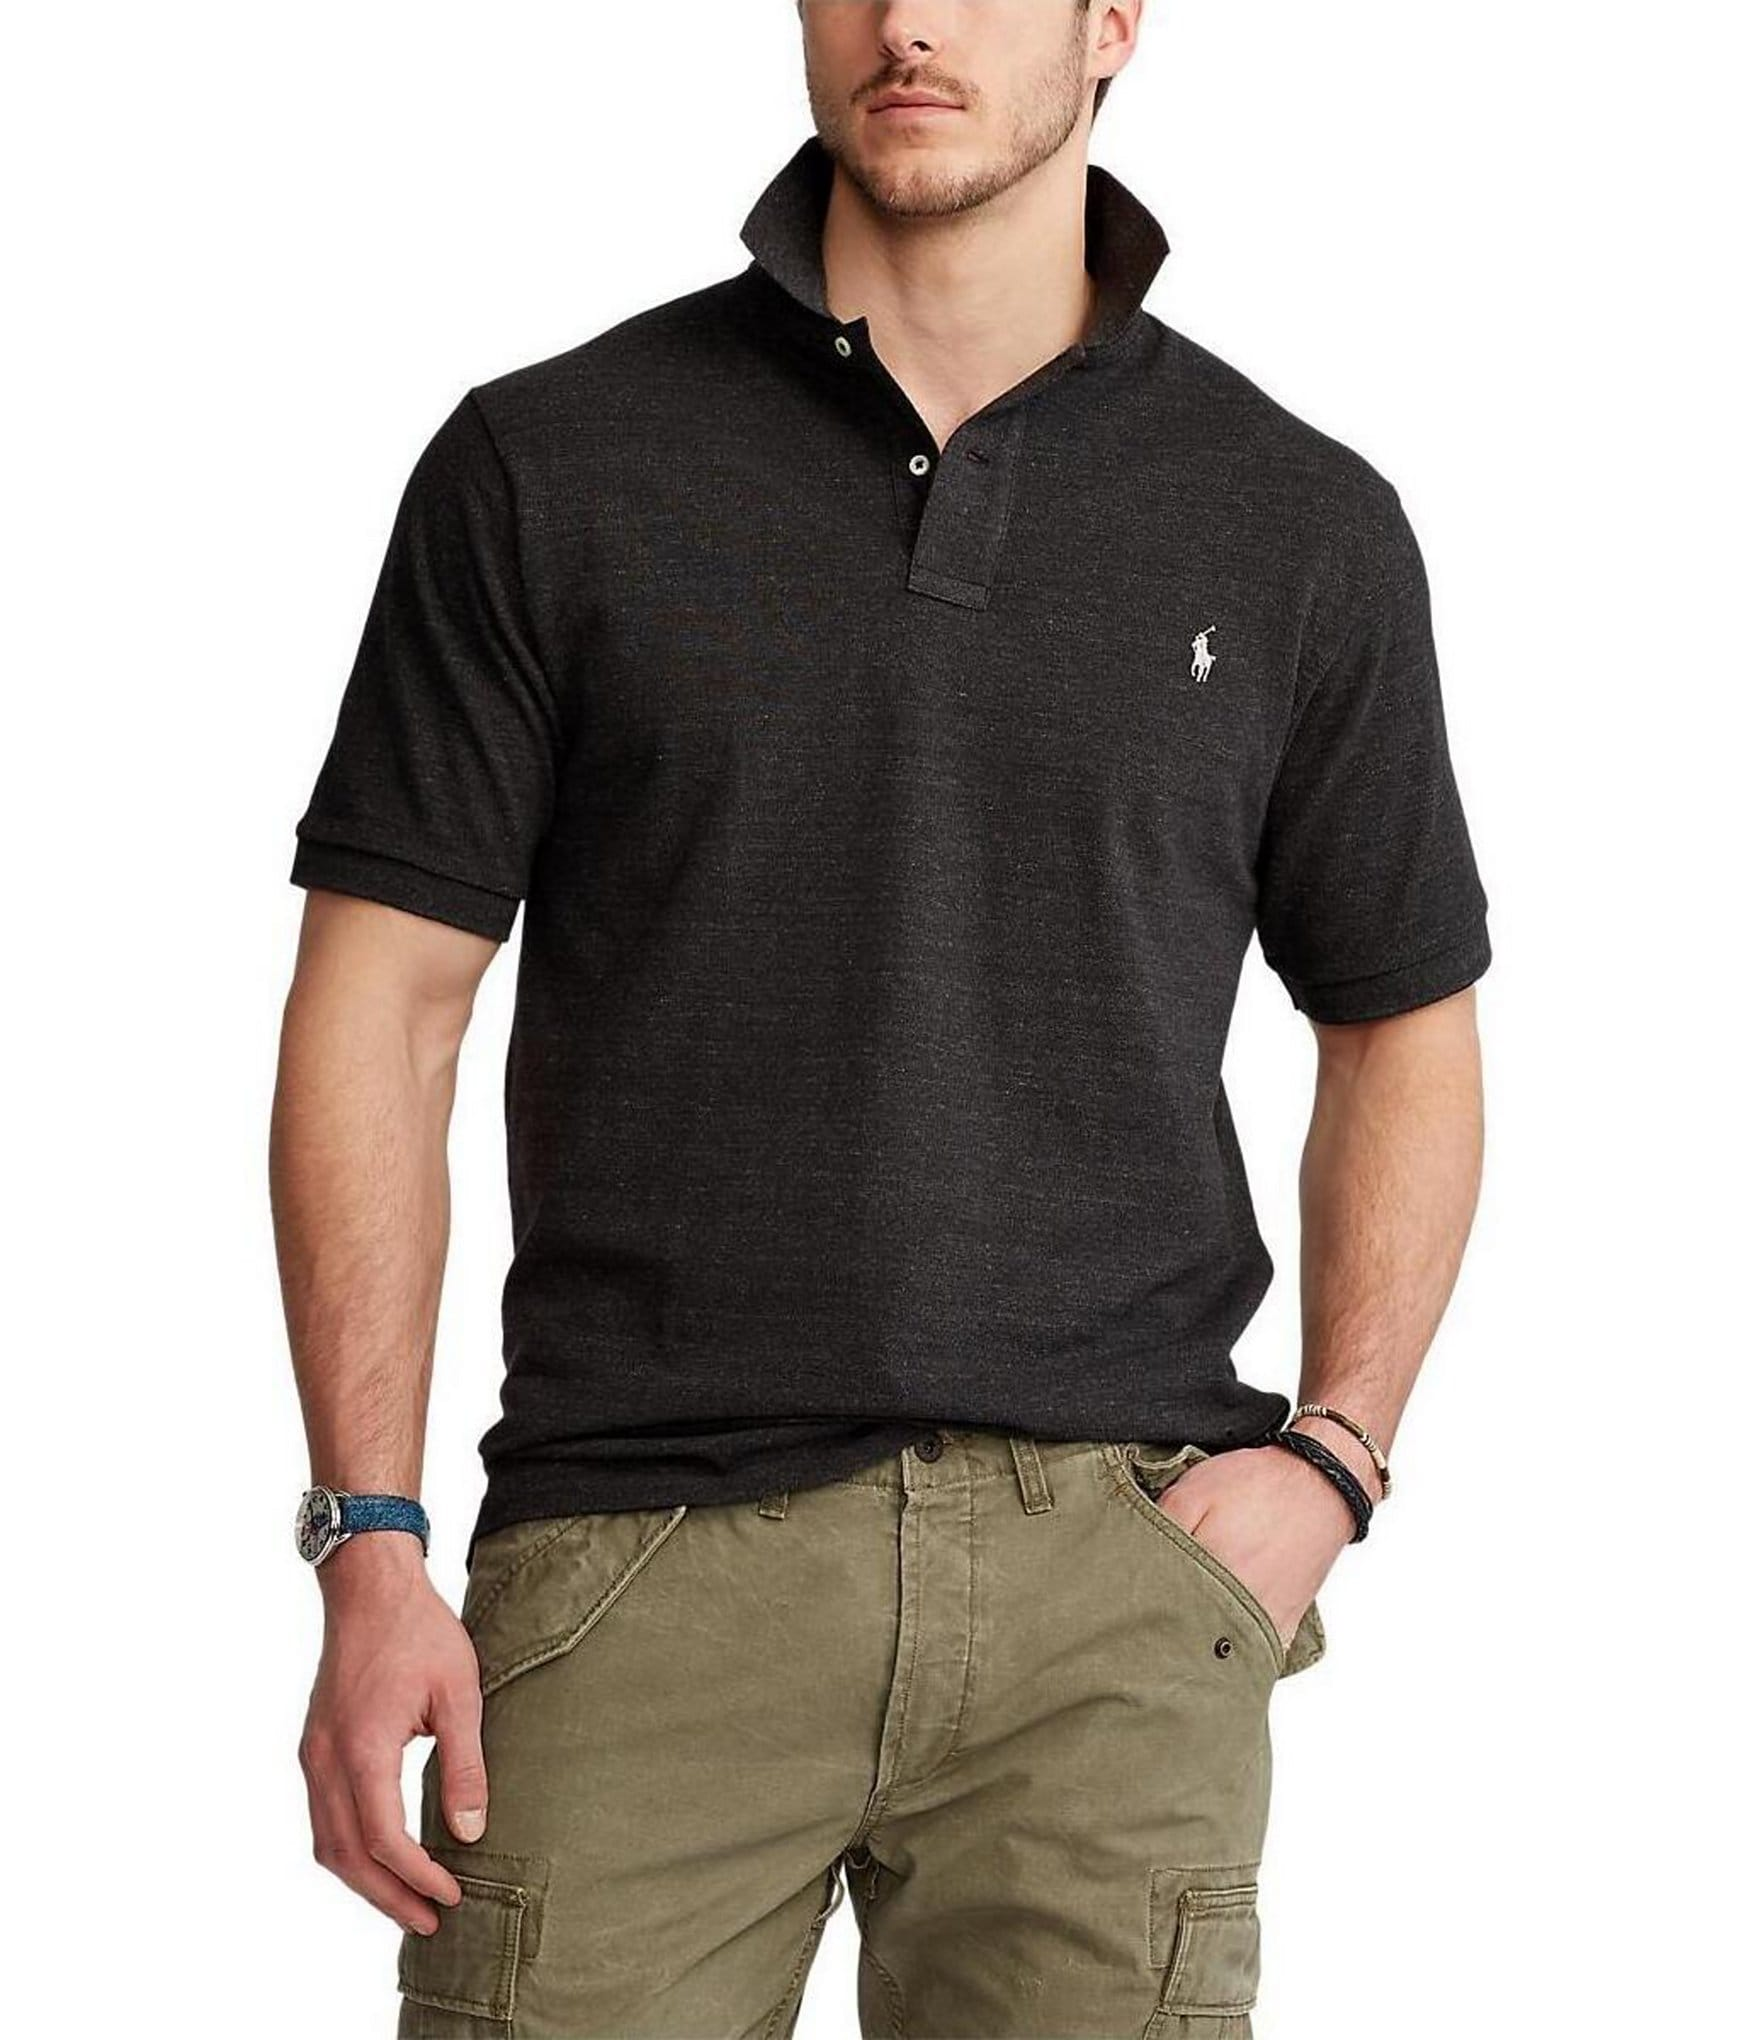 Dillards Mens Polo Shirts